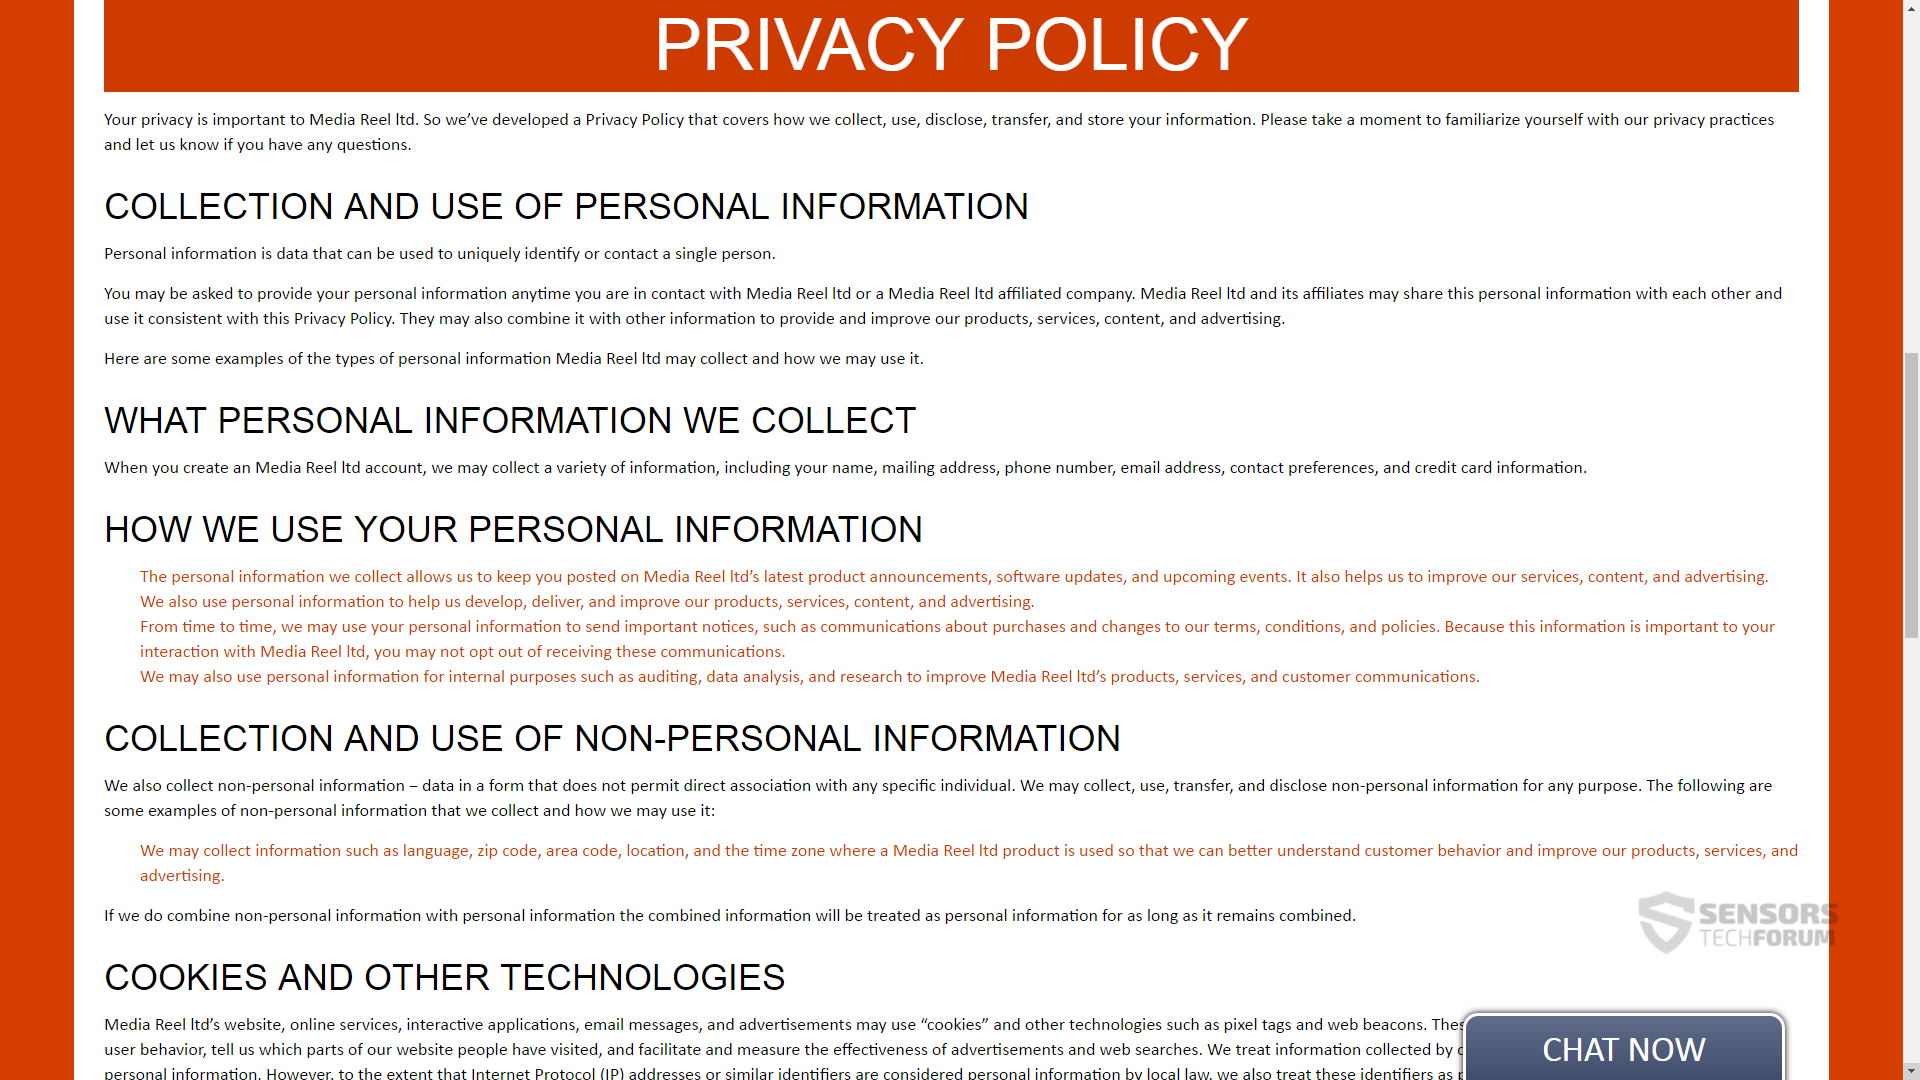 STF-123vidz-com-123-vidz-com-ads-data-collection-privacy-policy